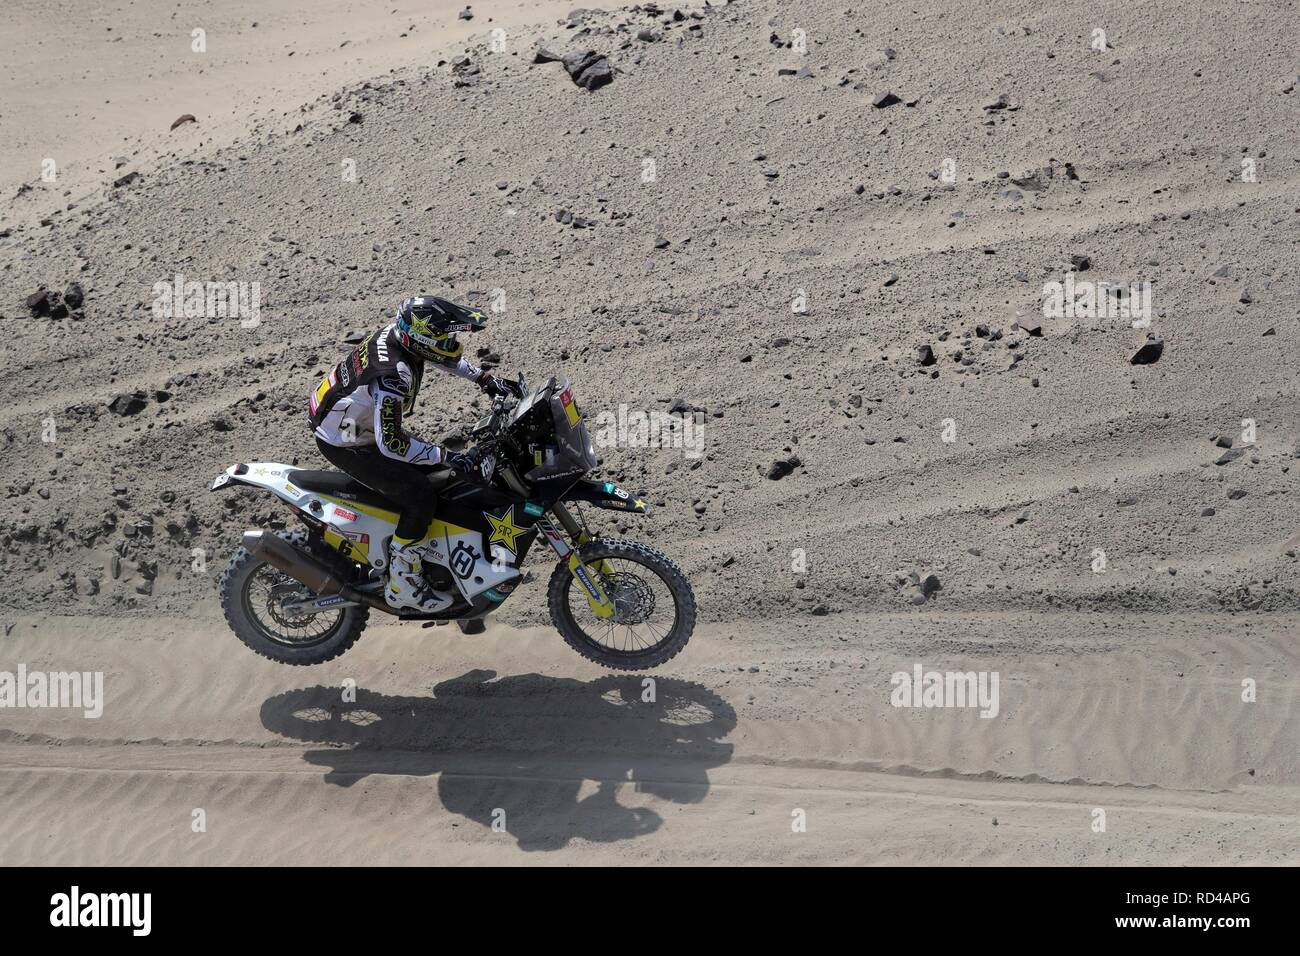 Pisco, Peru. 16th Jan, 2019. Chilean Pablo Quintanilla rides his Husqvarna during the ninth stage of the Rally Dakar 2018, in Pisco, Peru, 16 January 2019. Credit: Ernesto Arias/EFE/Alamy Live News - Stock Image